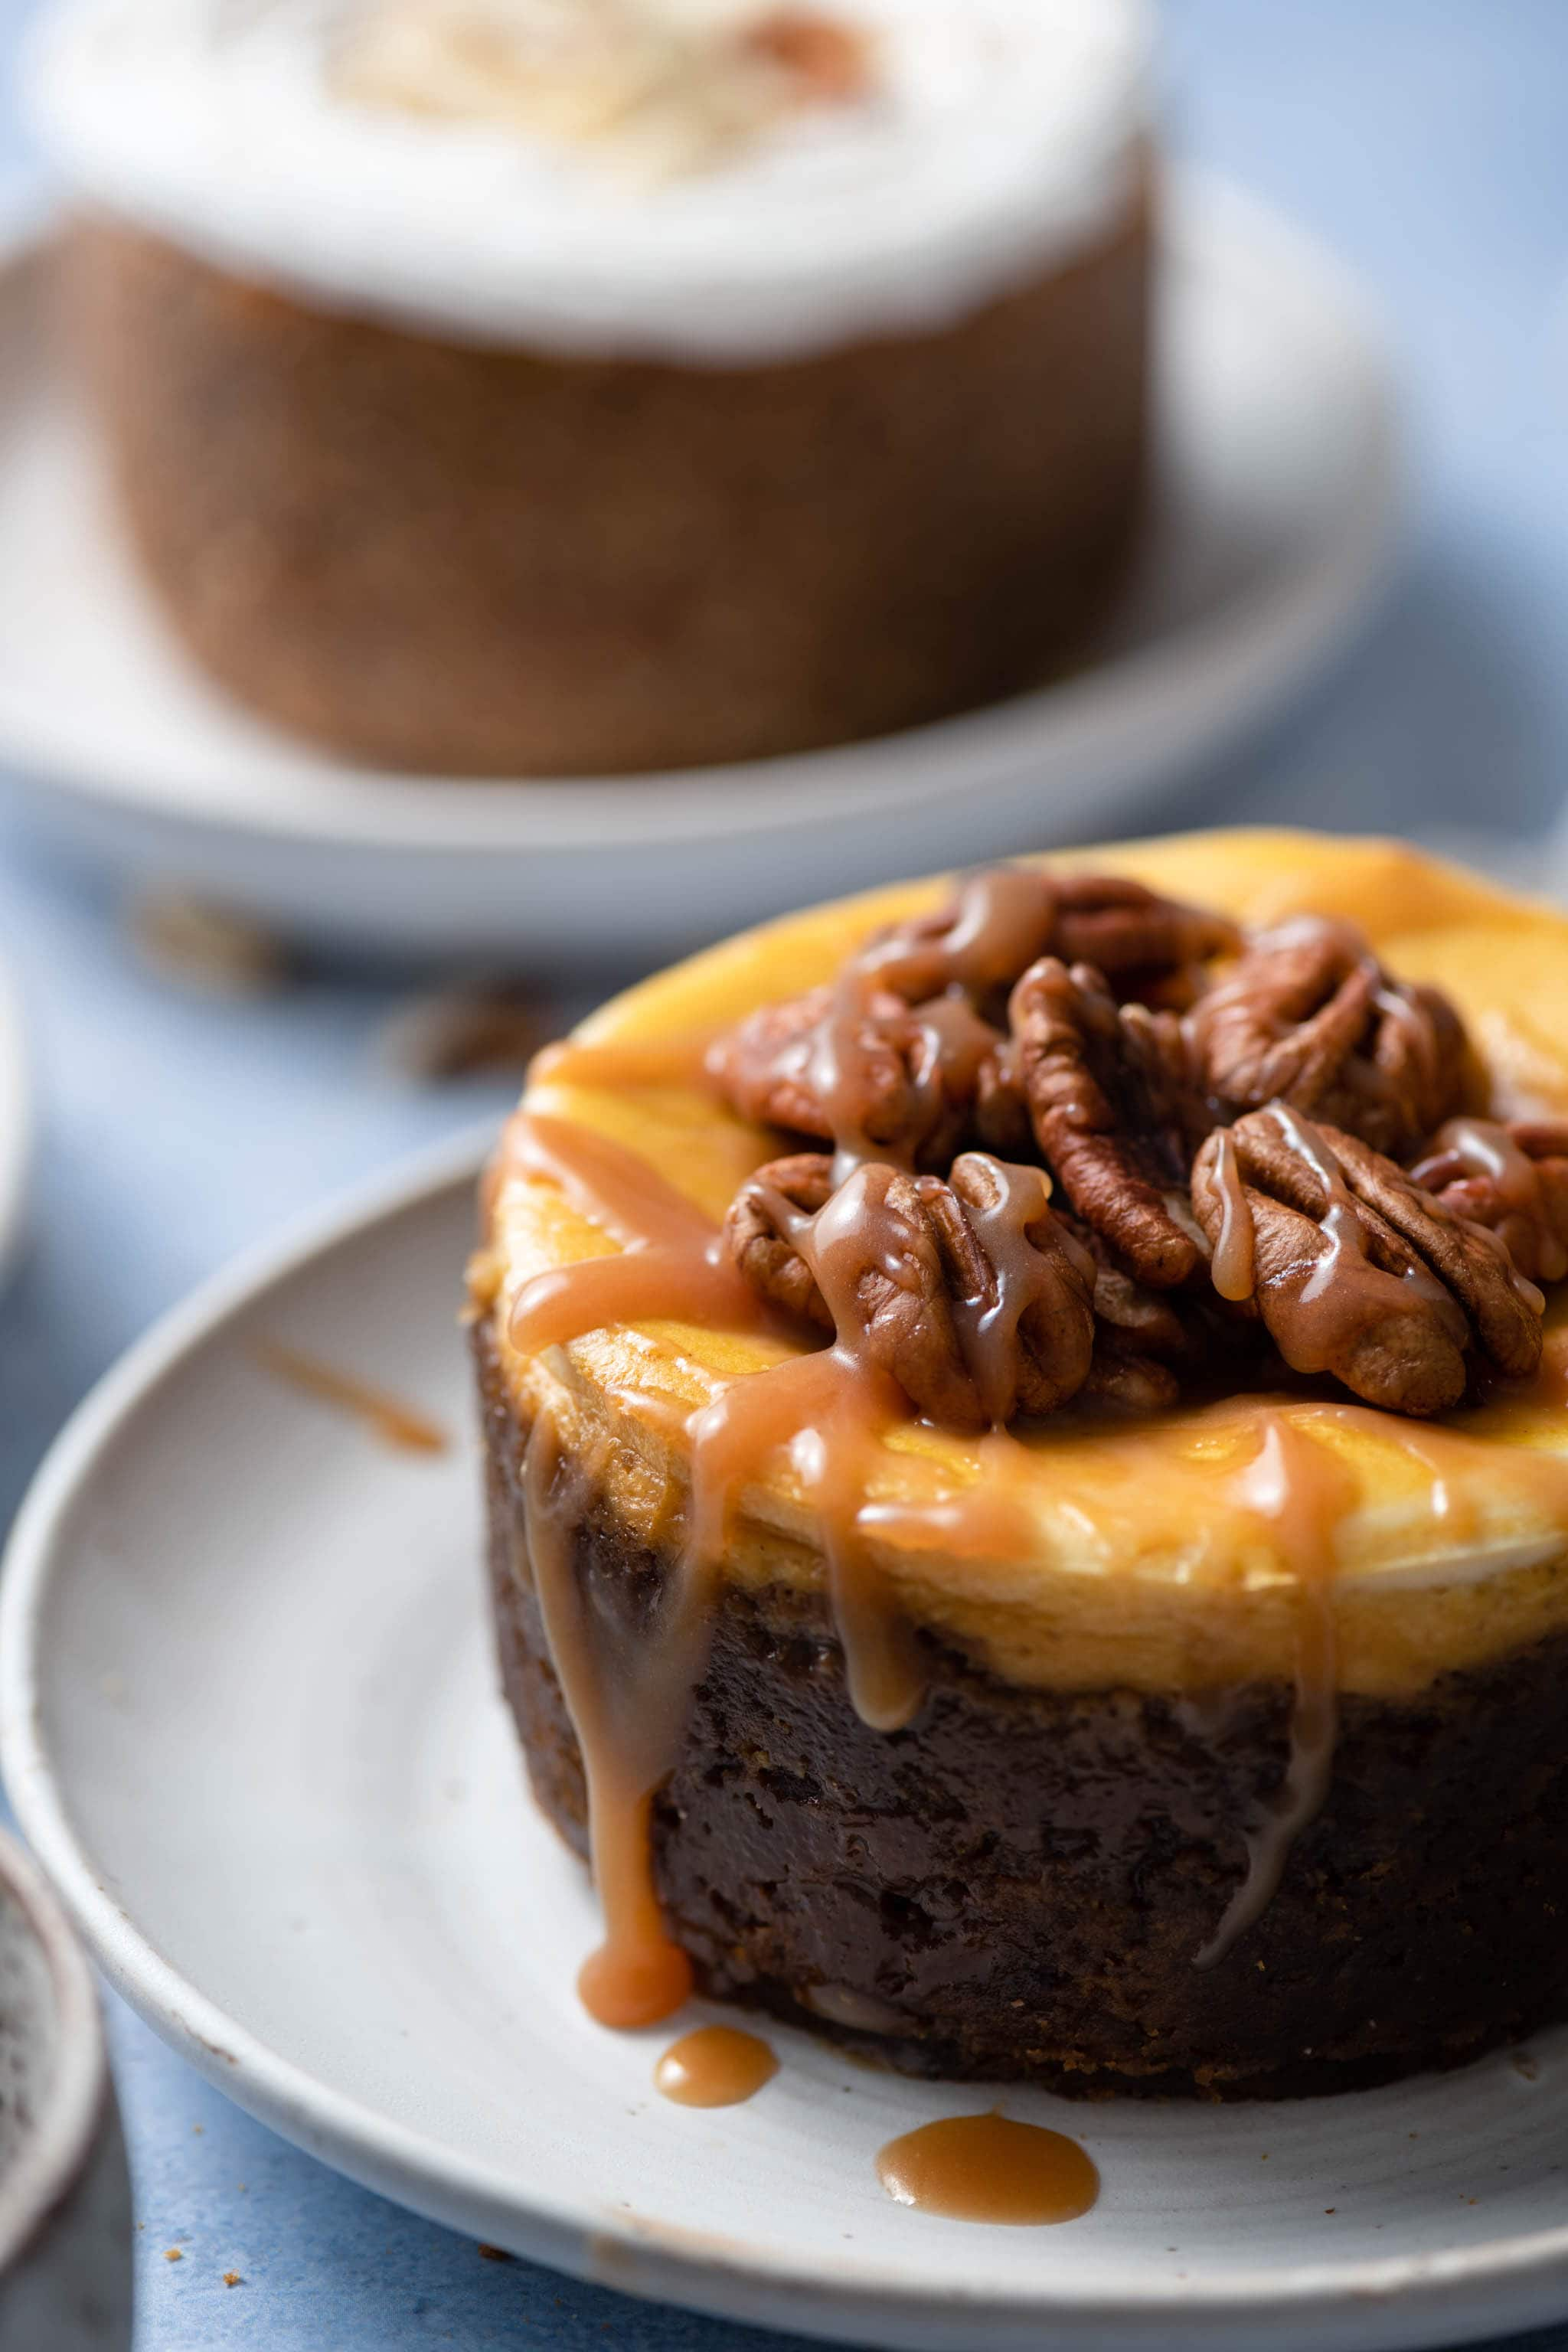 Pumpkin Cheesecake with Gingersnap Cookie Crust topped with pecans and caramel